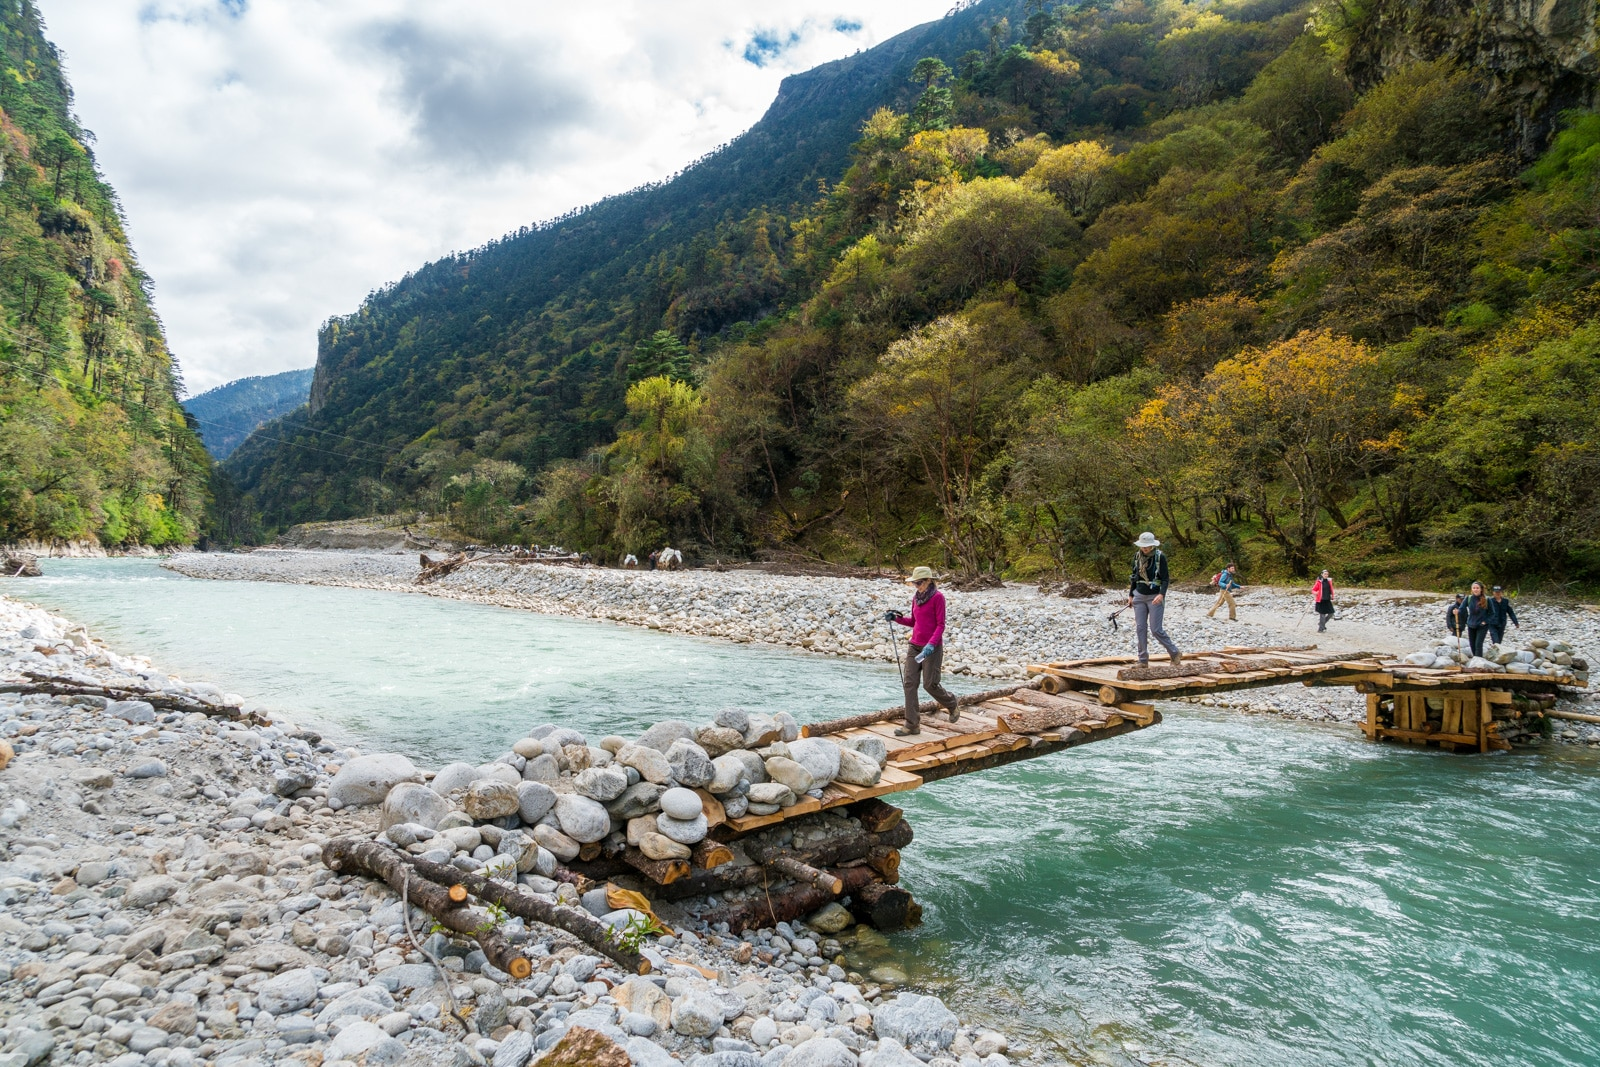 Photos of the Gasa - Laya trek in Bhutan - Tour group crossing a bridge on the river en route to Laya - Lost With Purpose travel blog